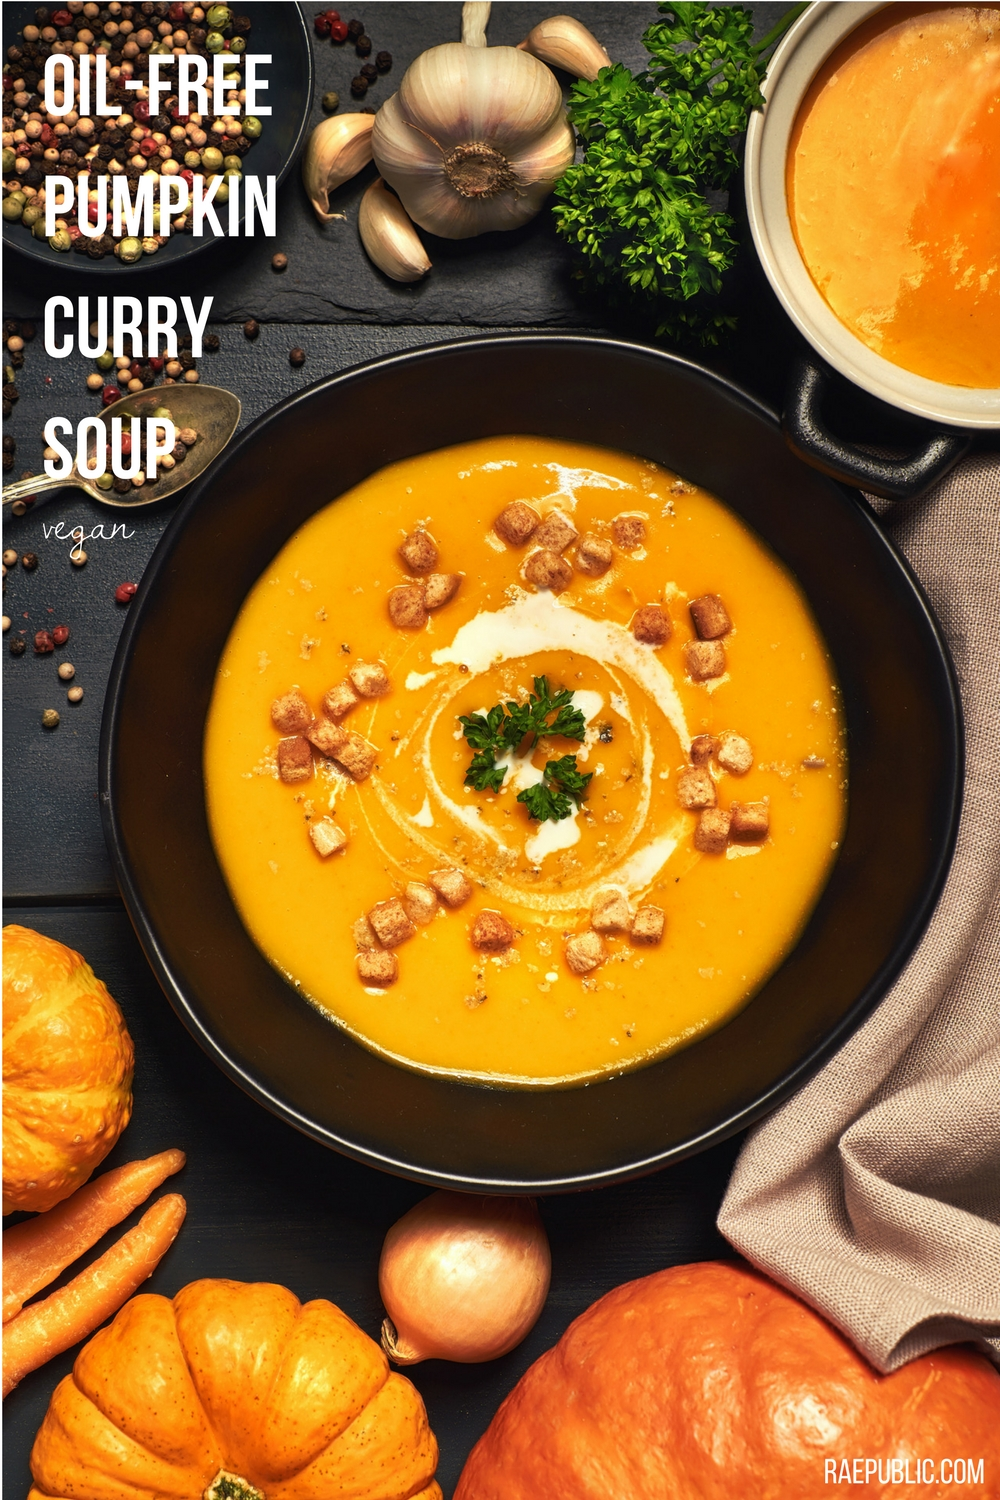 Easy oil free pumpkin soup that is dairy free and naturally gluten free. Made with organic pumpkin puree and full fat coconut milk.